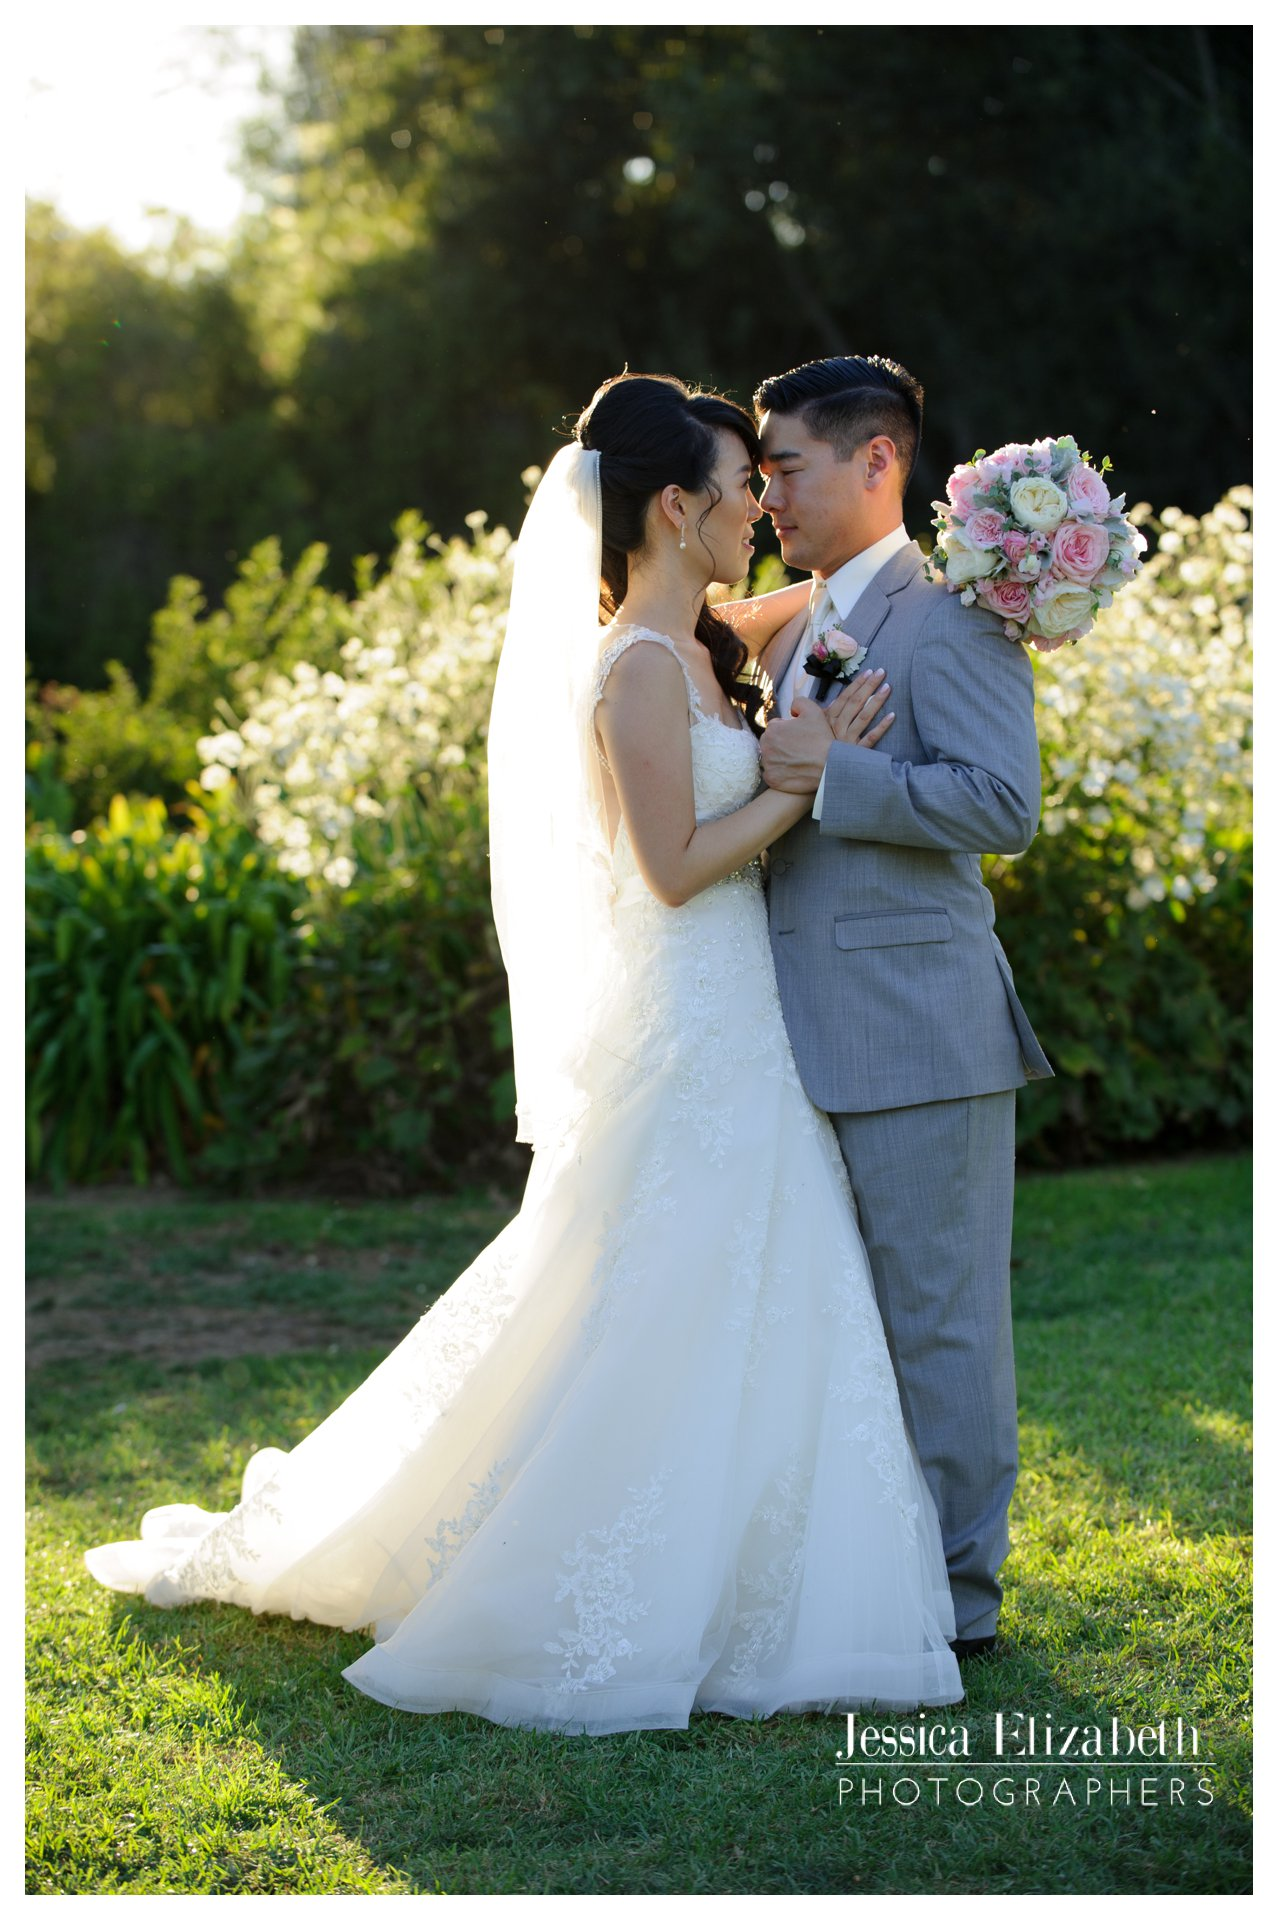 26-South Coast Botanic Garden Palos Verdes Wedding Photography by Jessica Elizabeth